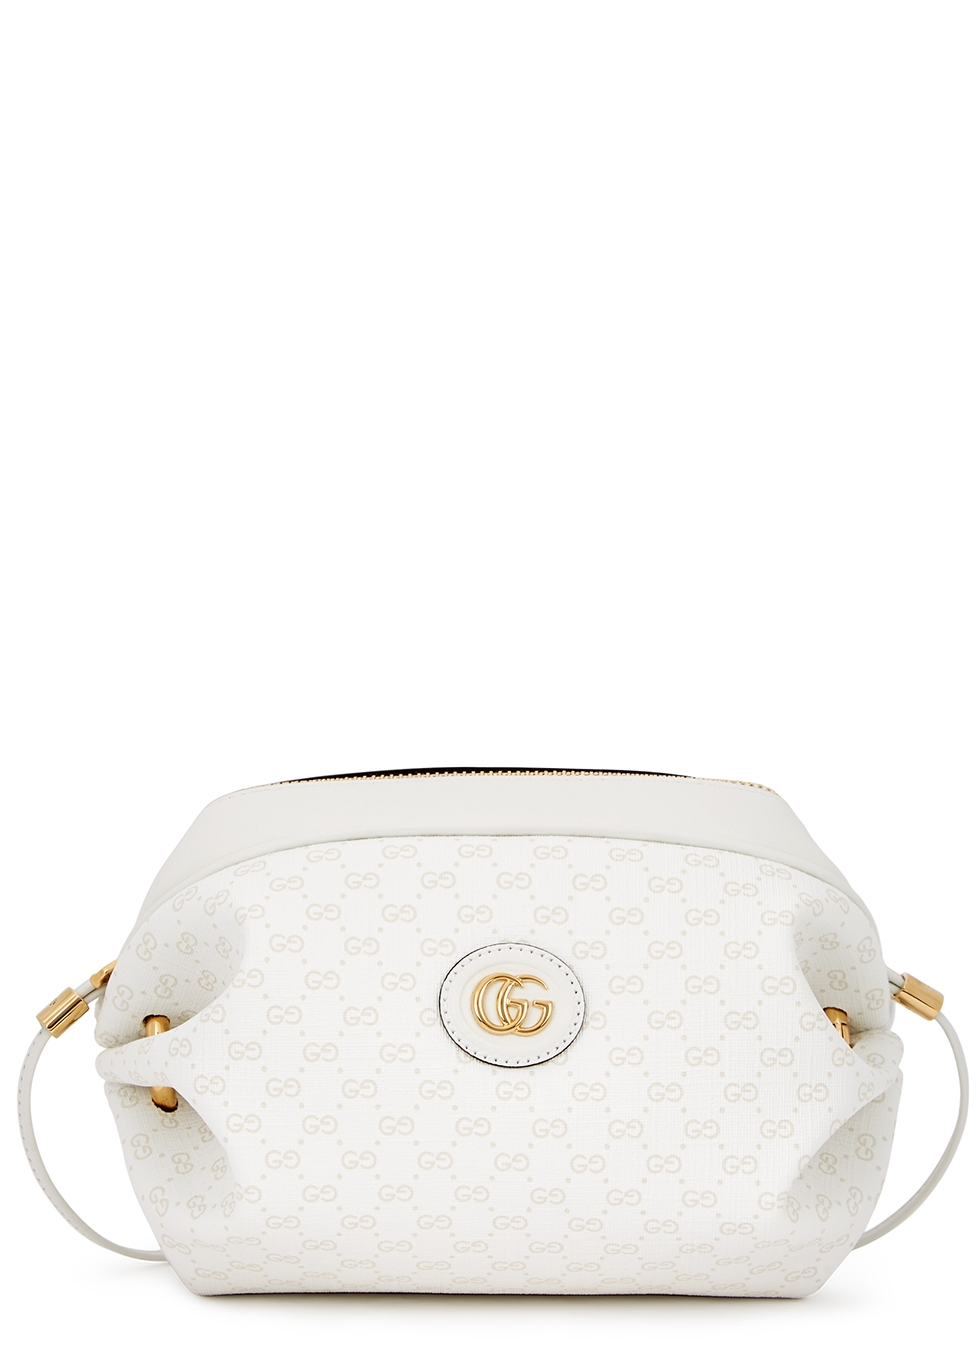 women\u0027s designer bags, handbags and purses harvey nicholsmini gg white shoulder bag